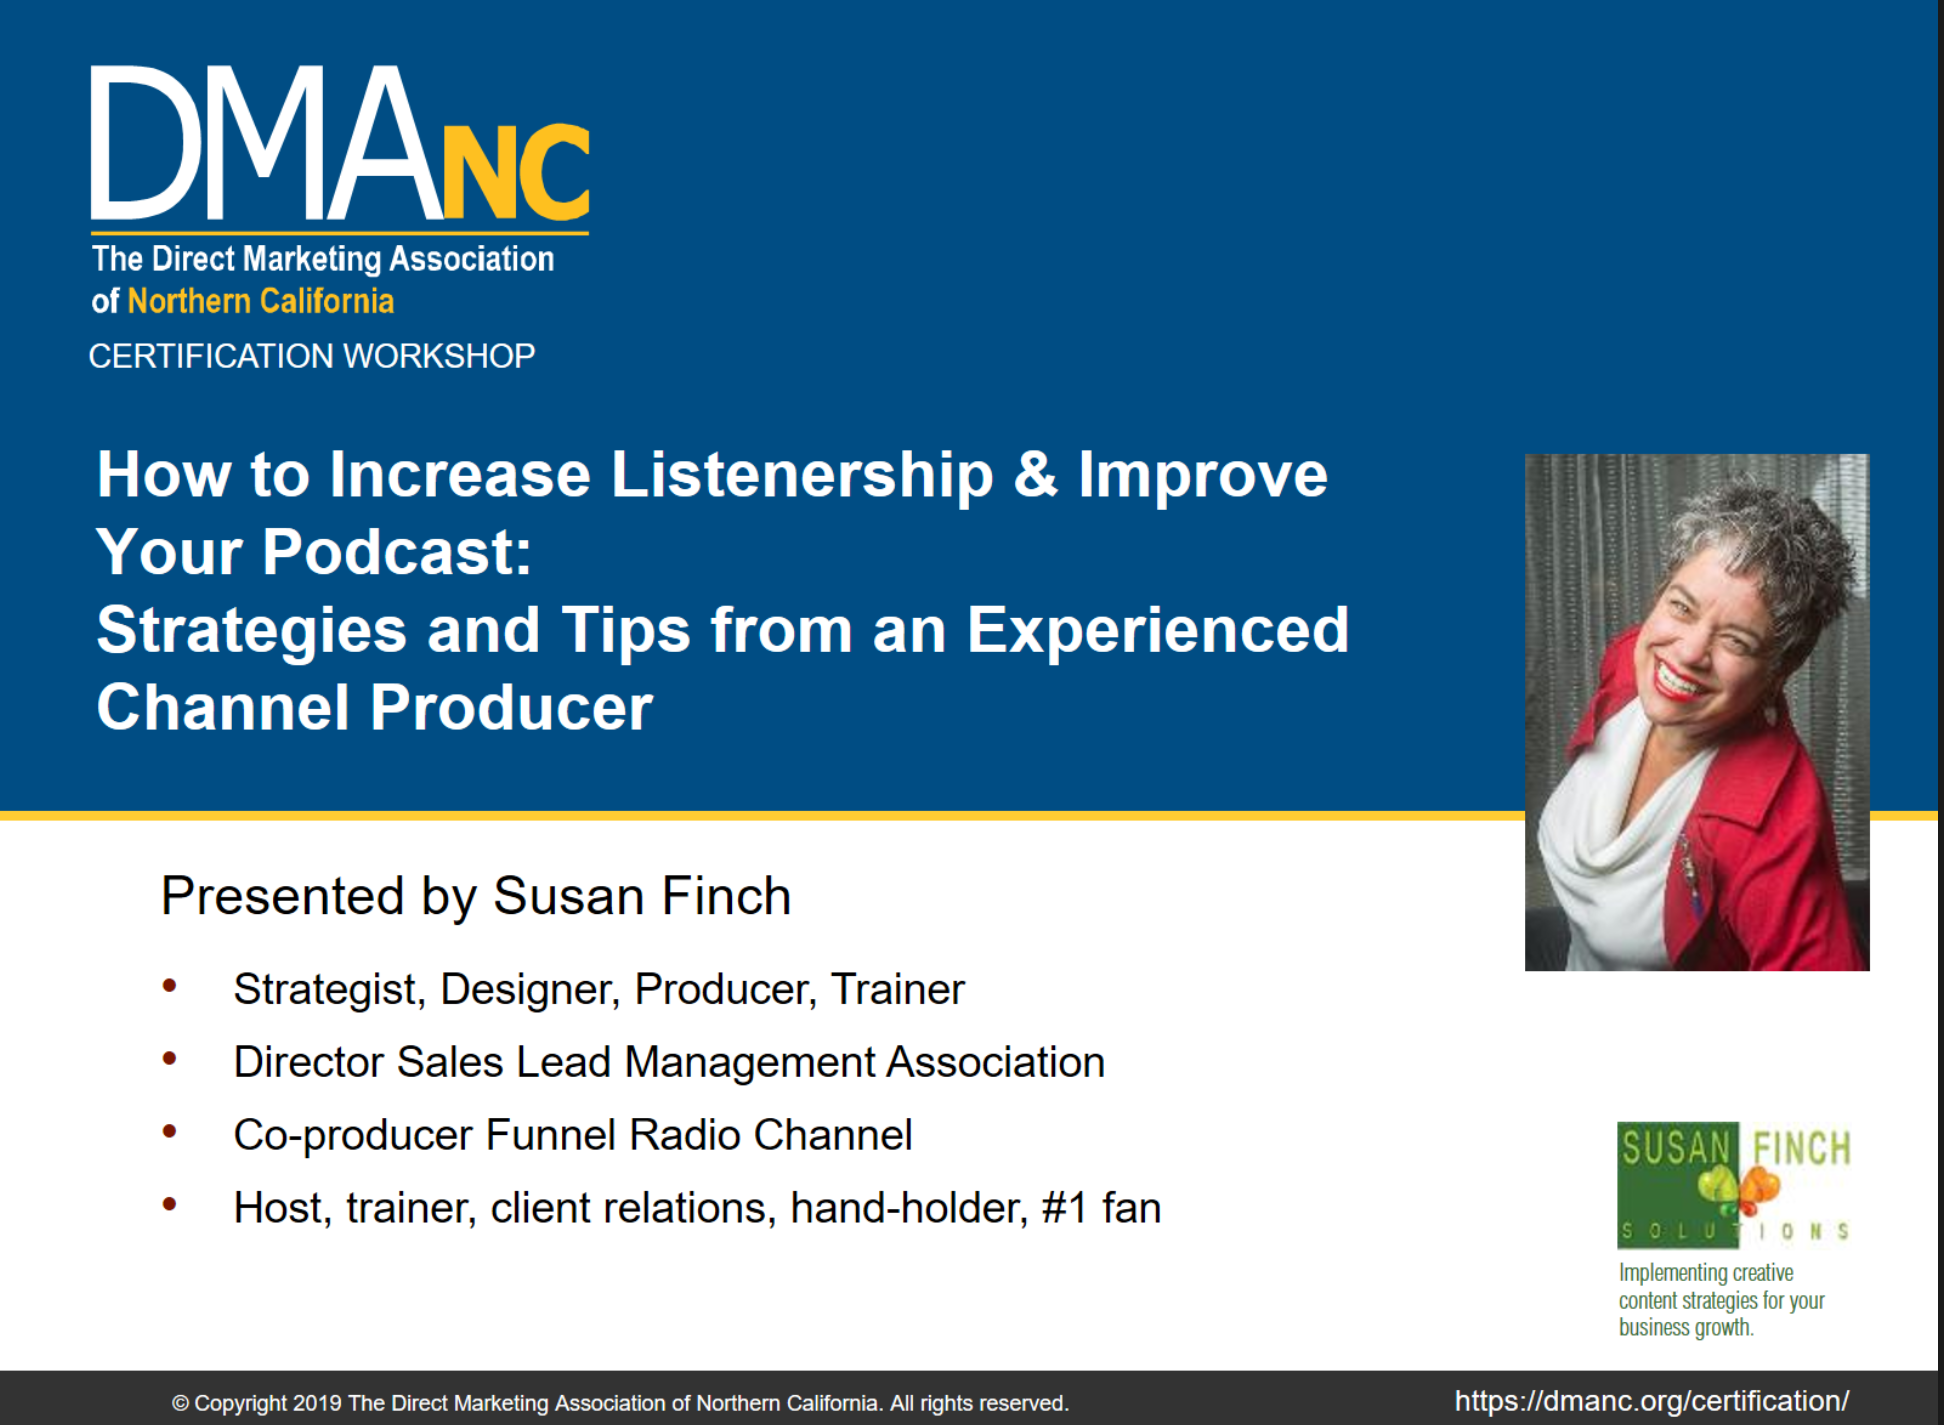 Podcast courses by Susan Finch from the DMANC